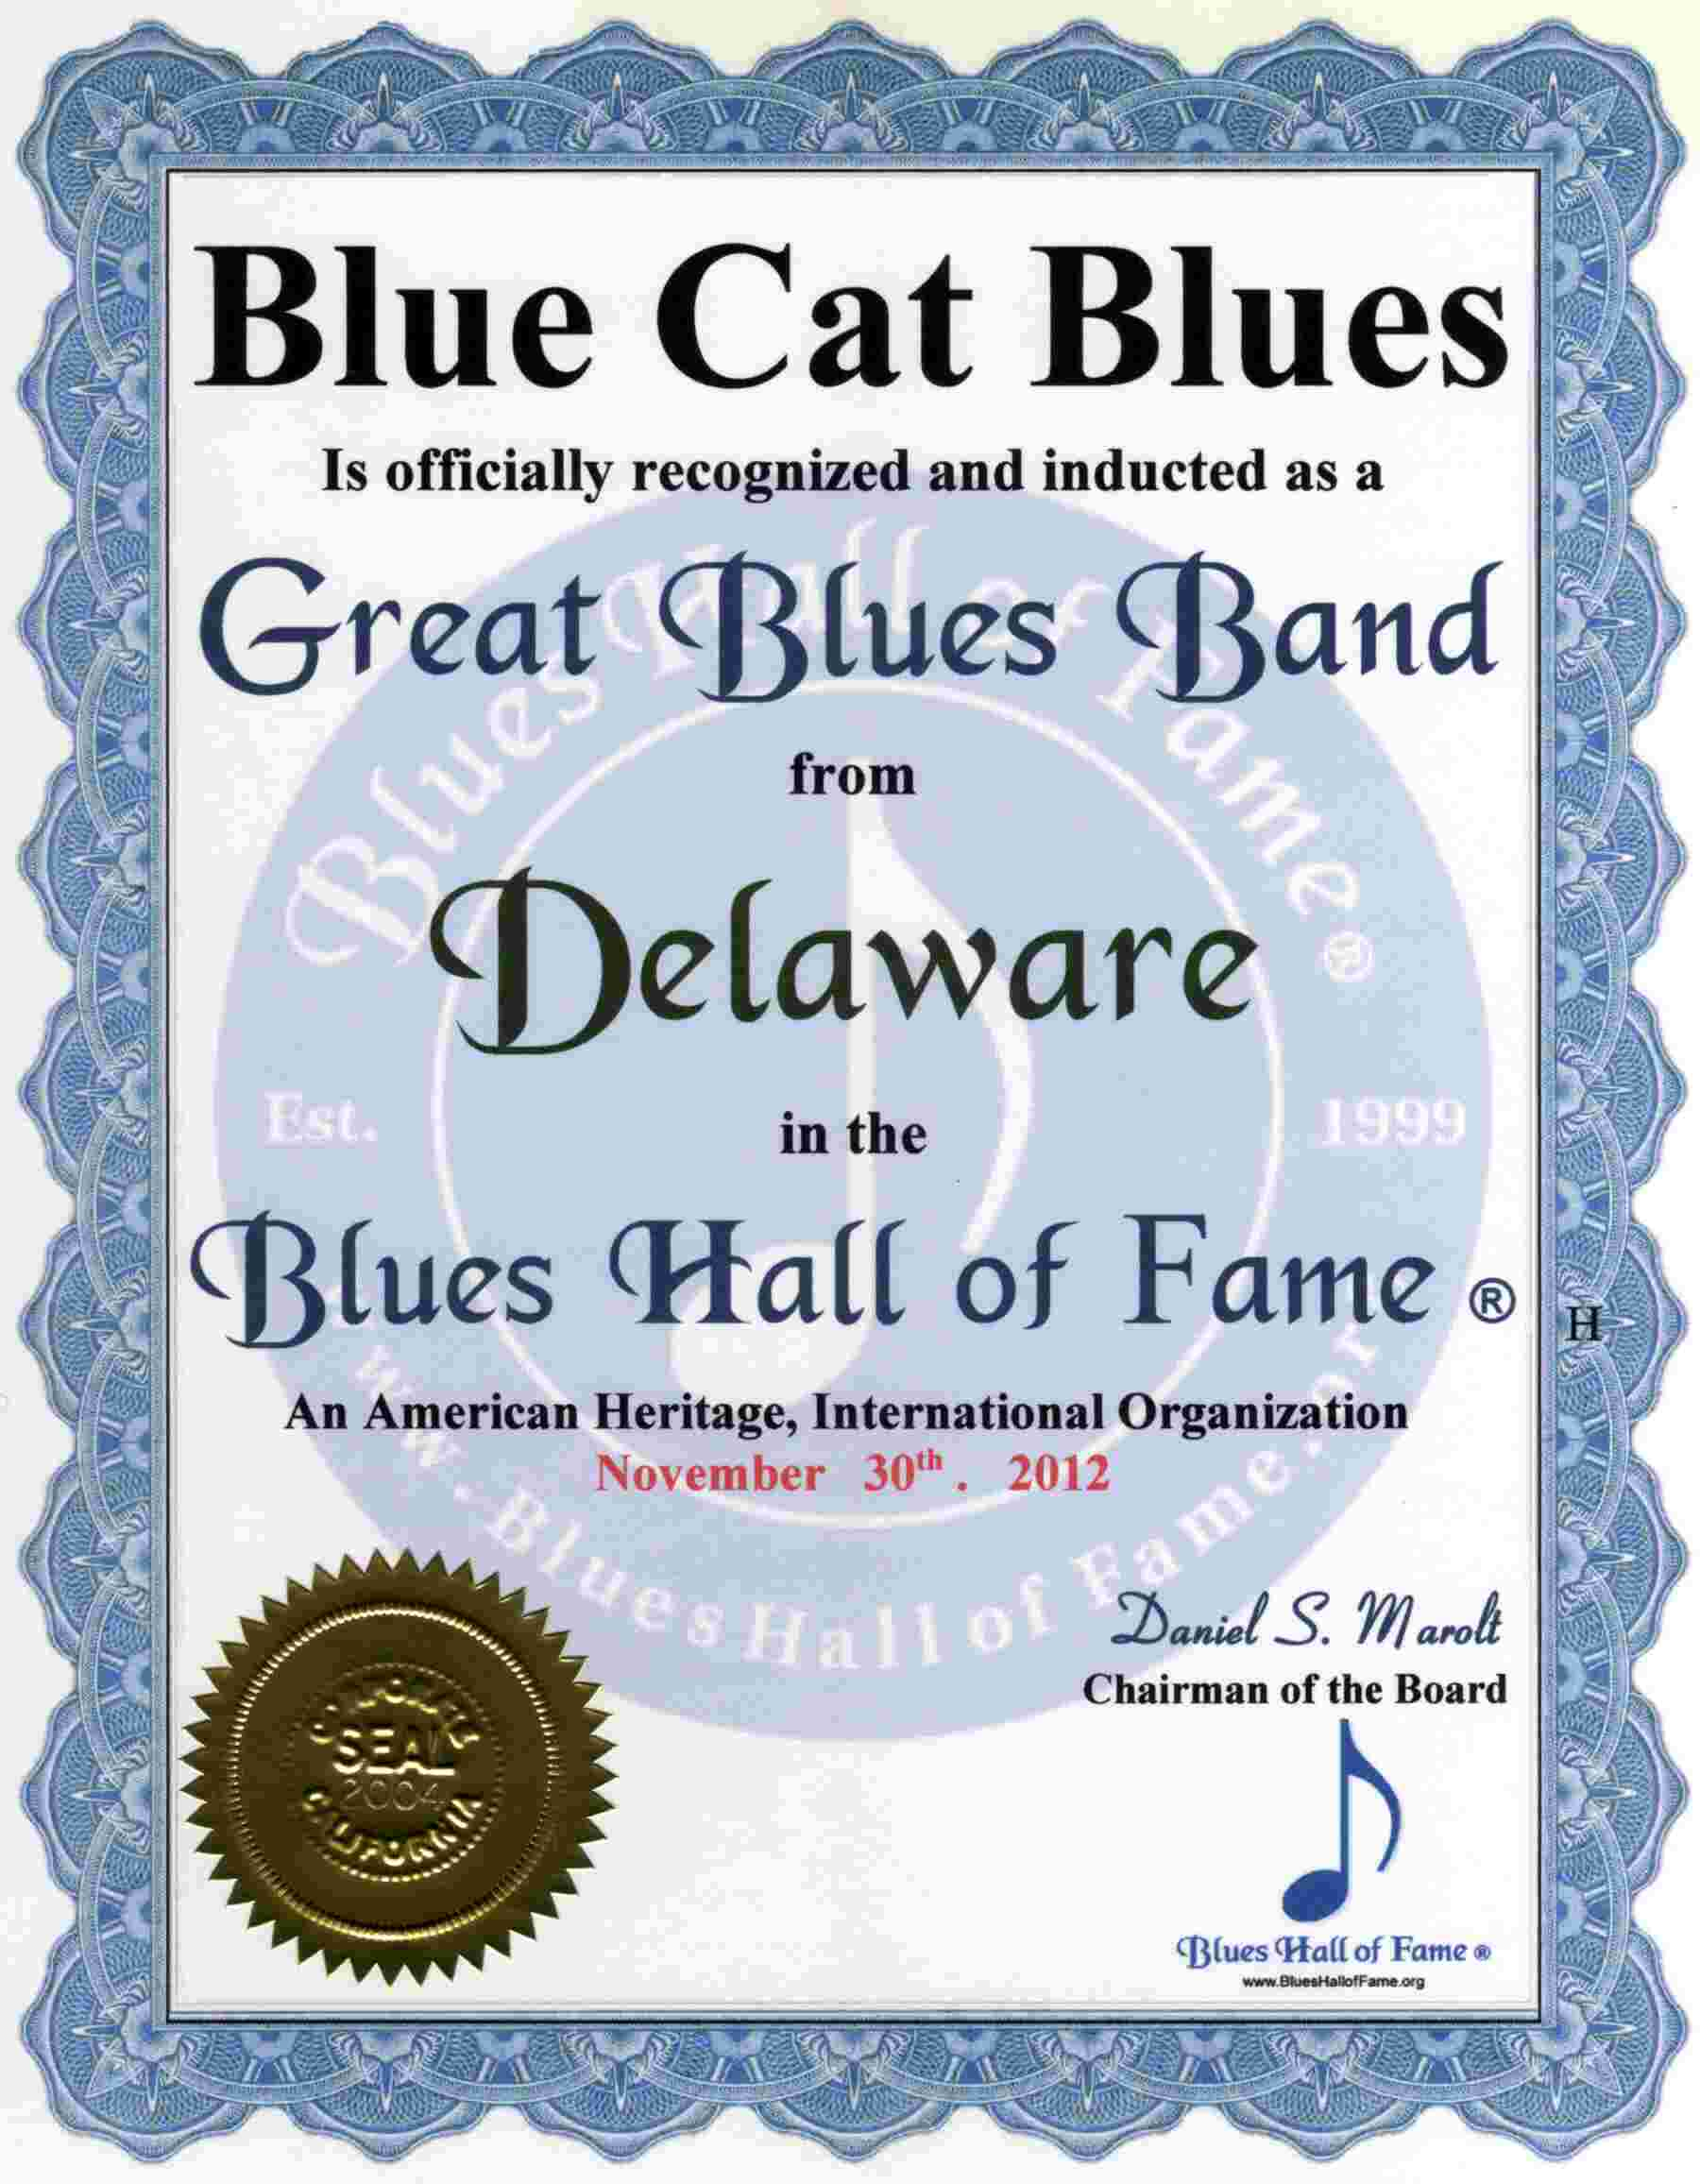 Delaware Blues Hall of Fame Blues Artists of Delaware inducted